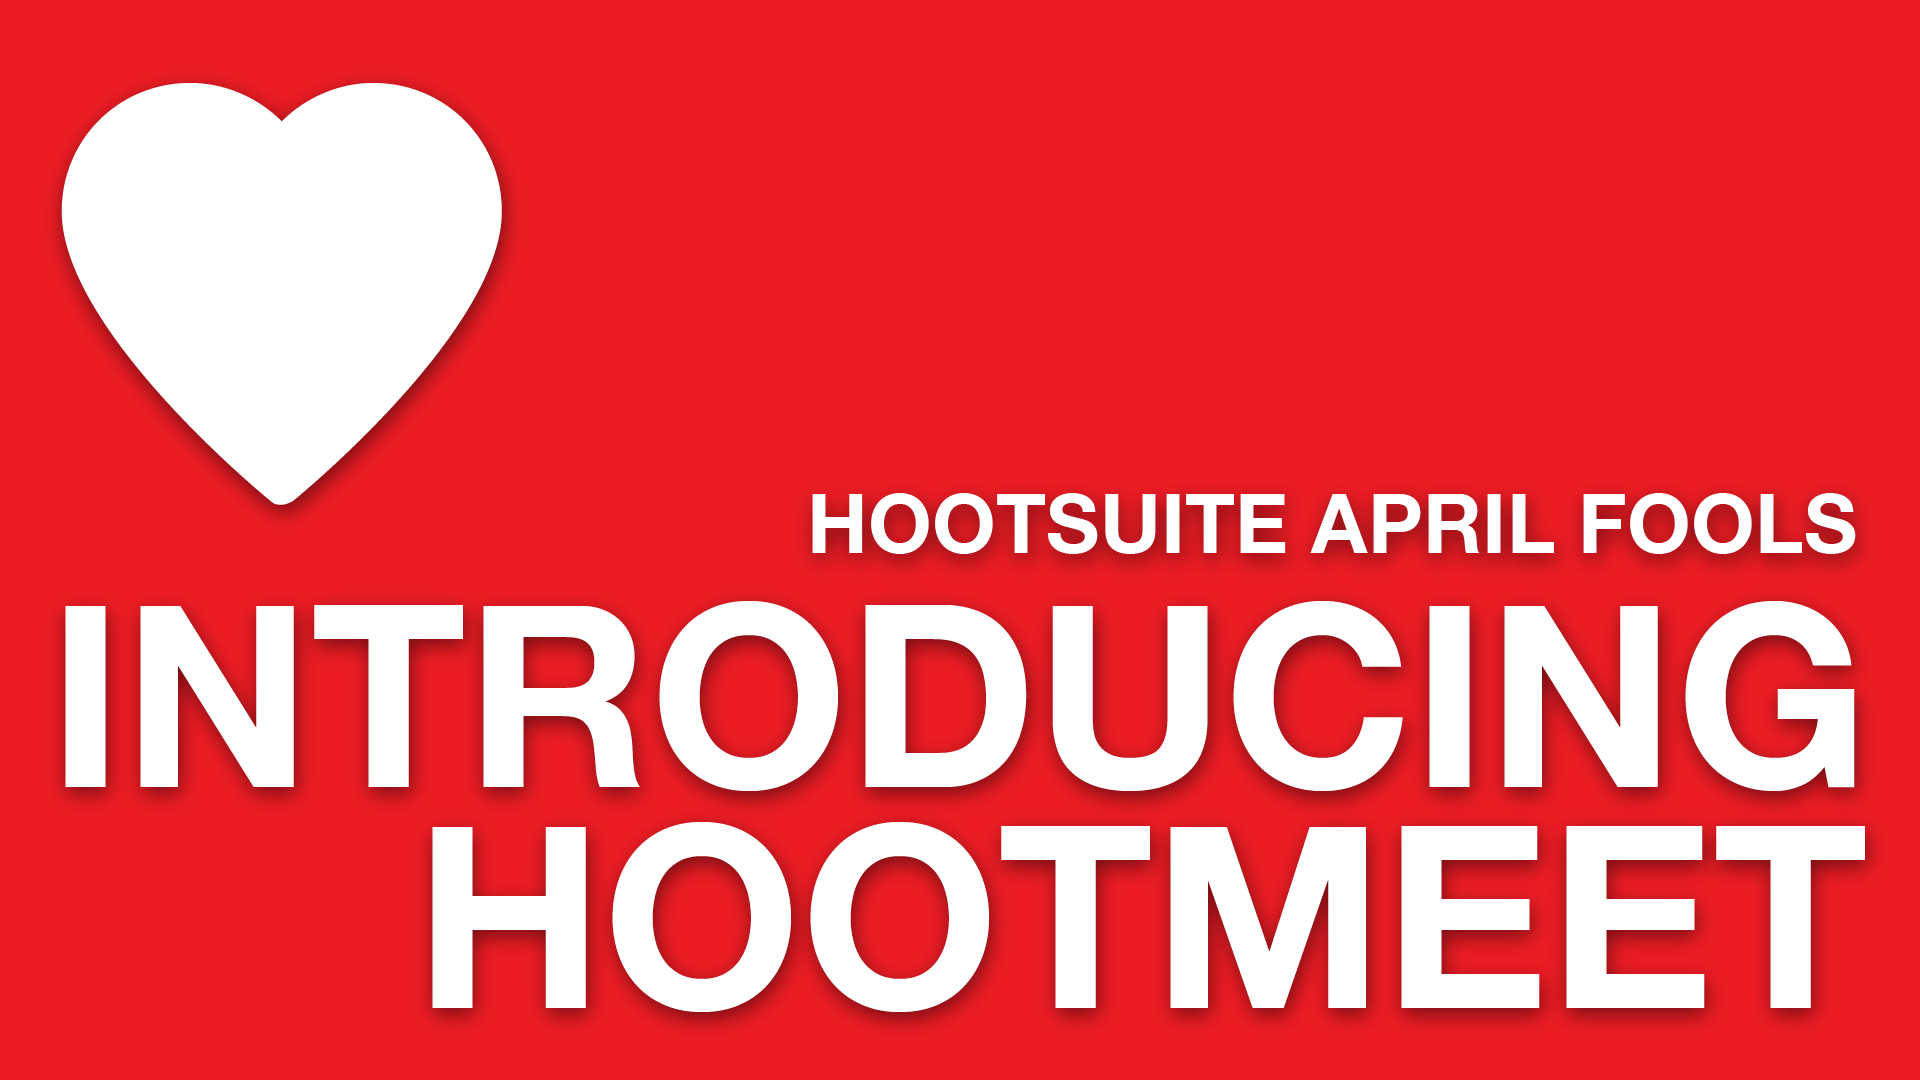 Introducing HootMeet